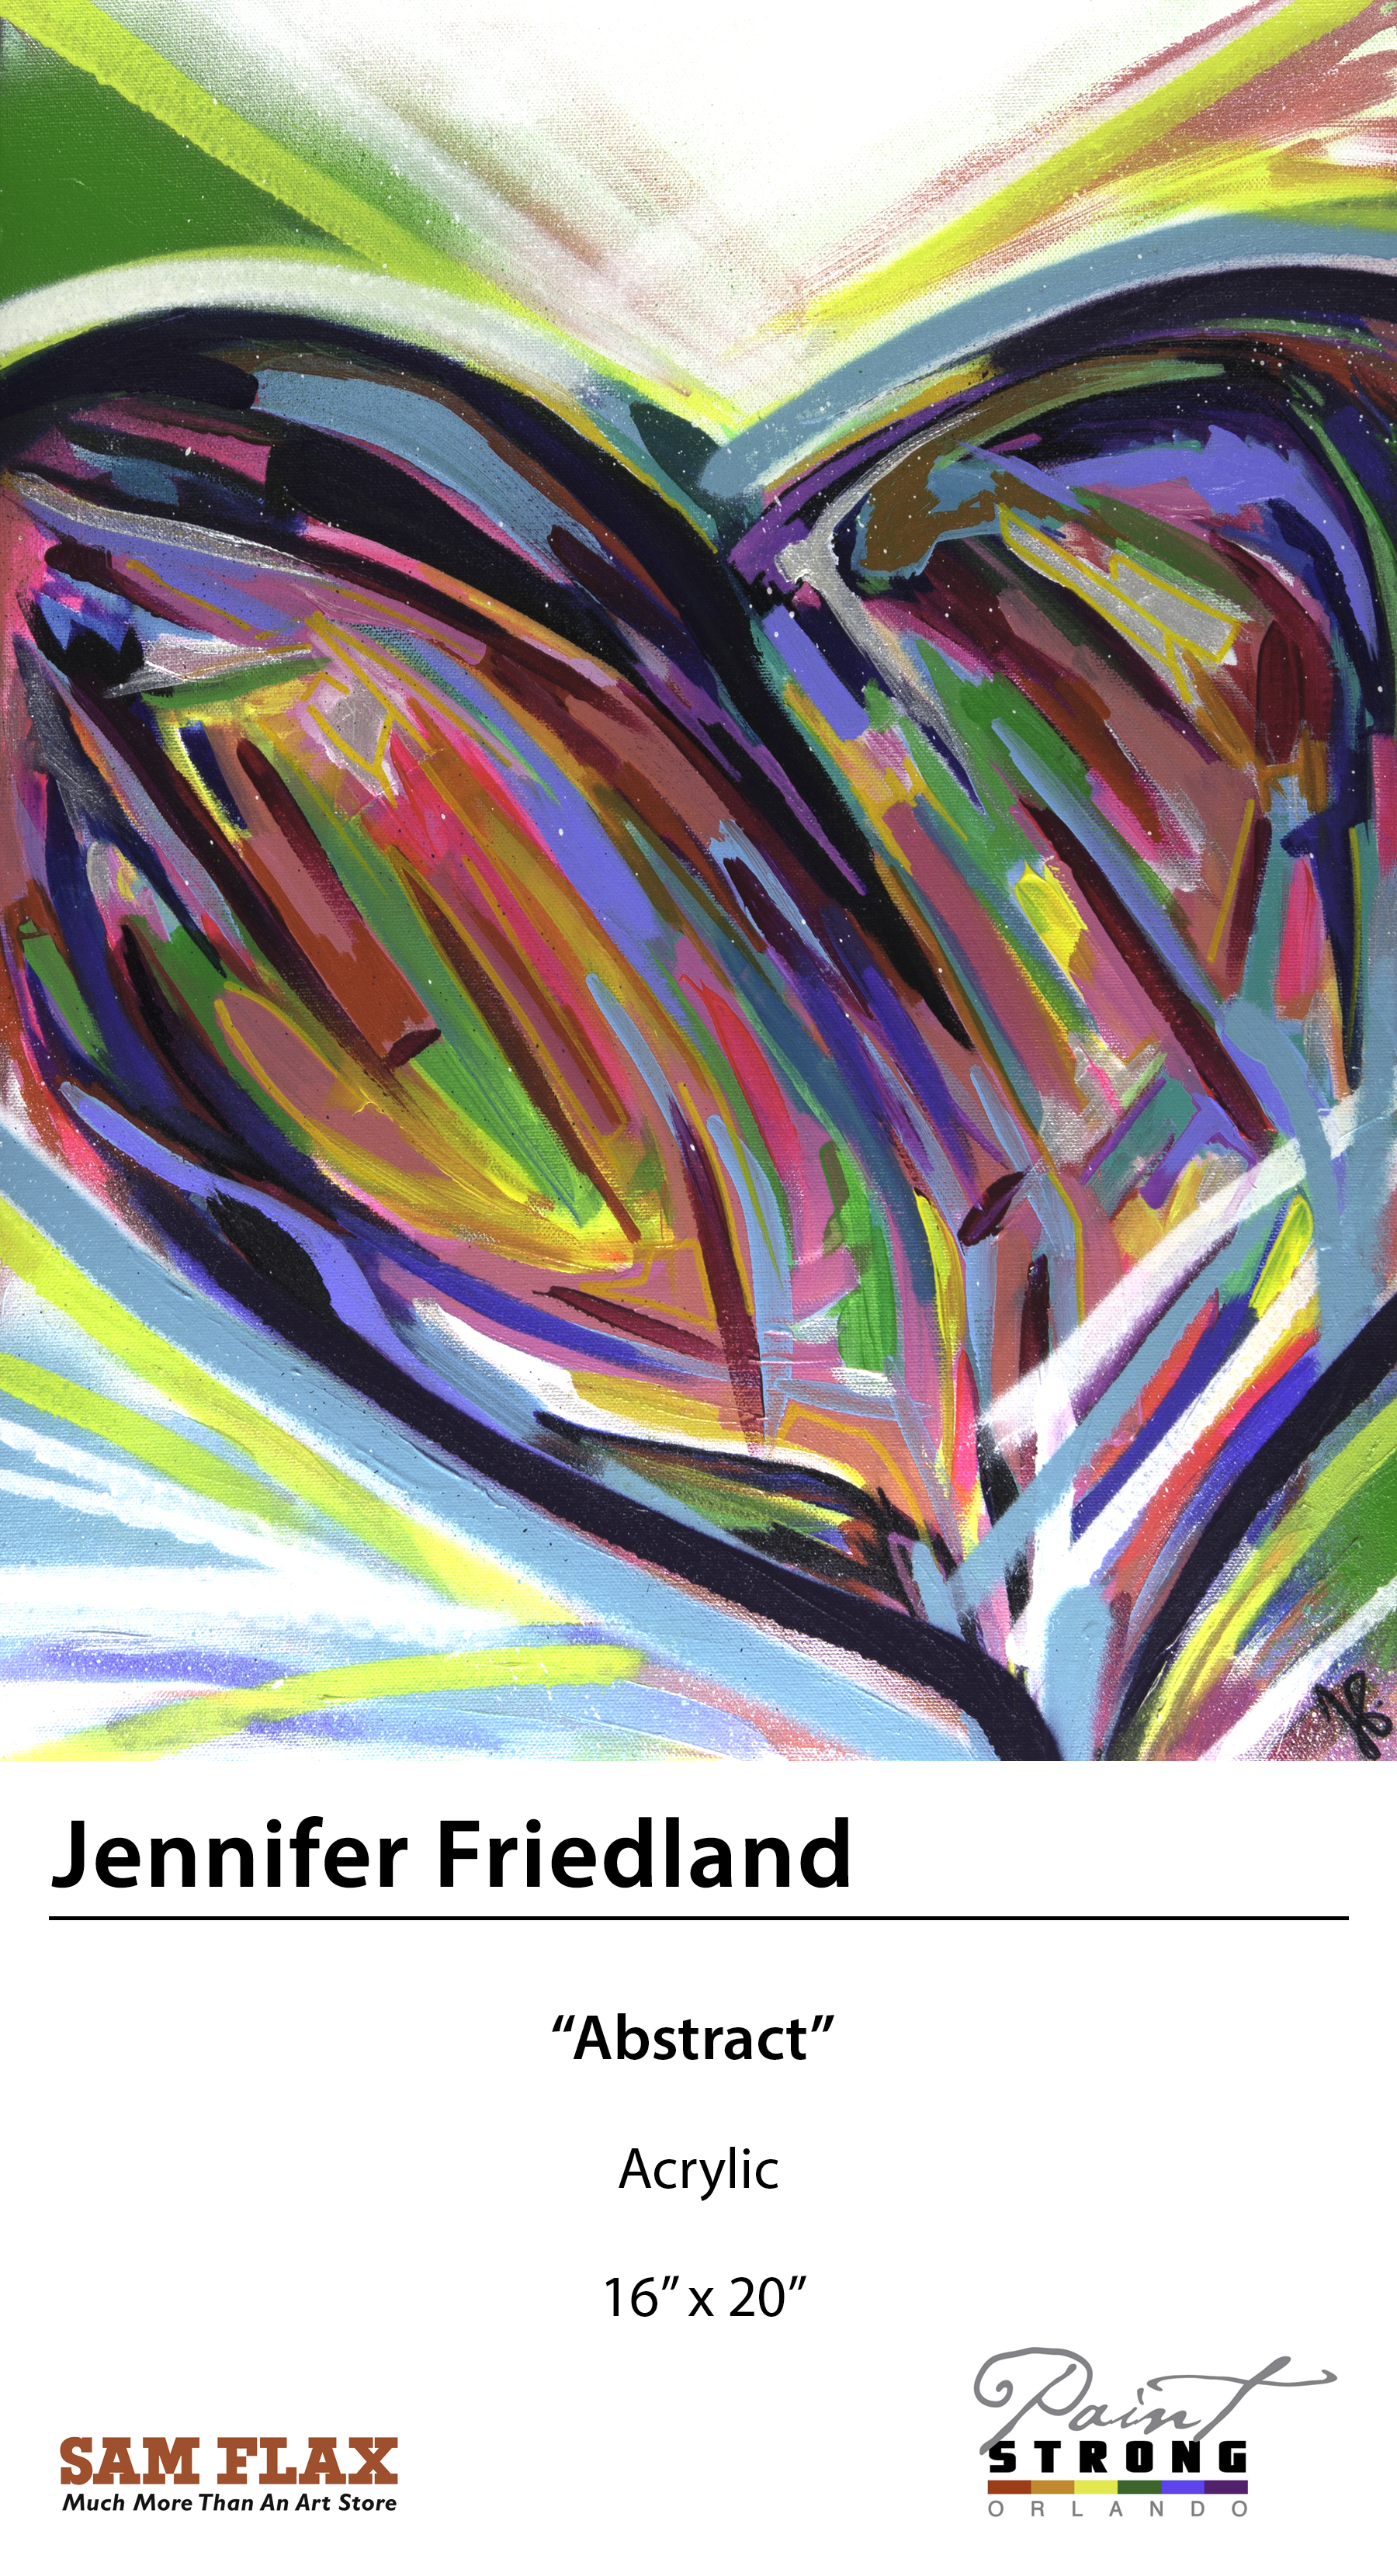 Jennifer Friedland